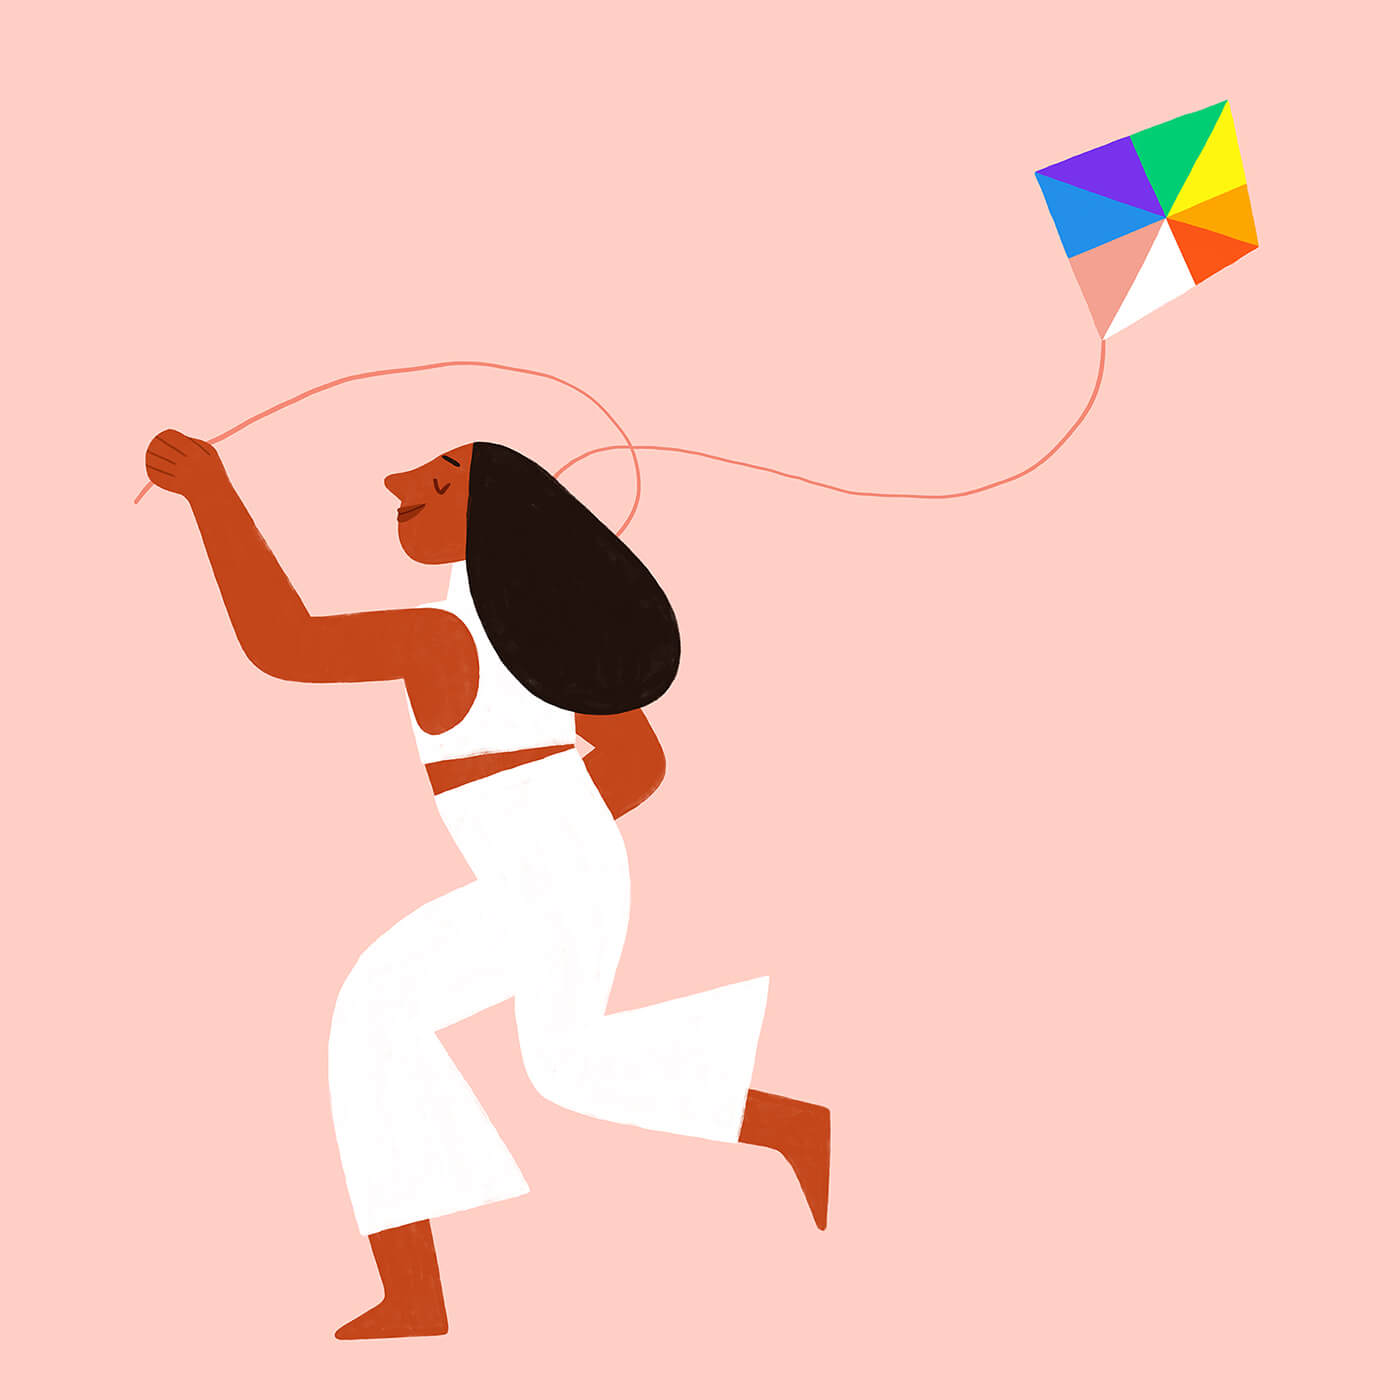 ueno-pride-queer-rainbow-june-kite-proud-illustration-violeta-noy